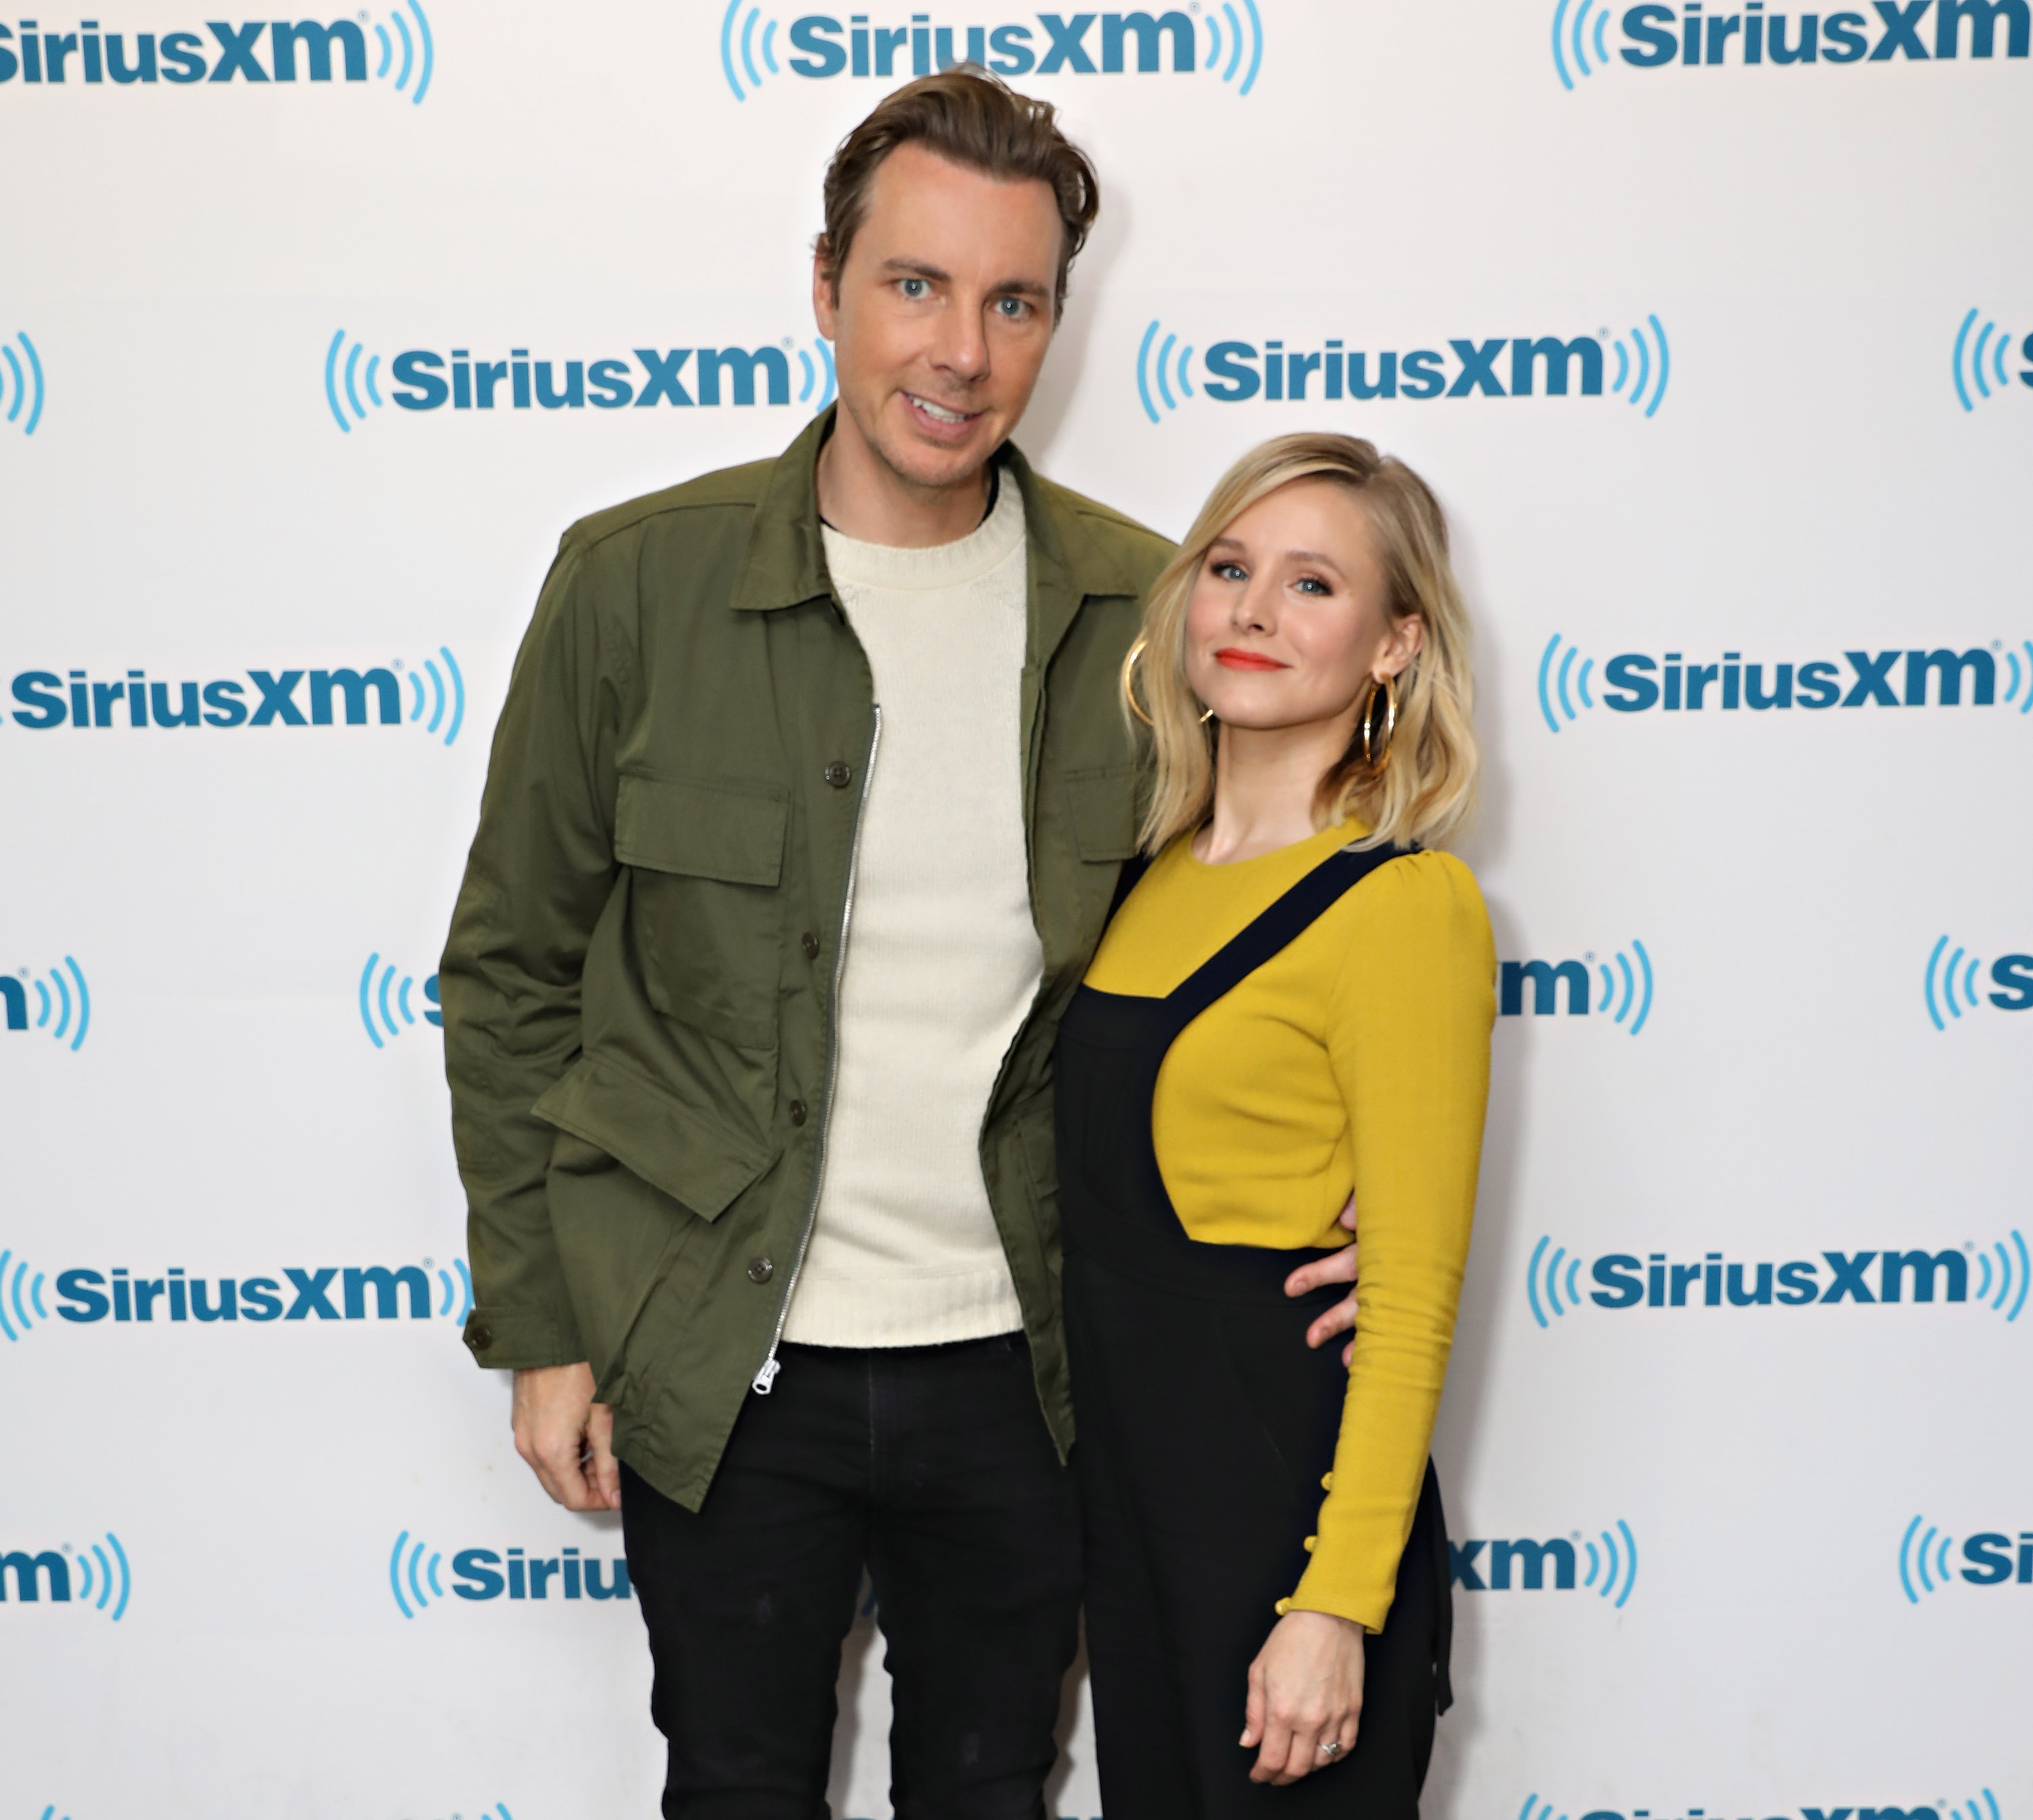 Actors Dax Shepard and Kristen Bell visit the SiriusXM Studios on March 22, 2017 in New York City.